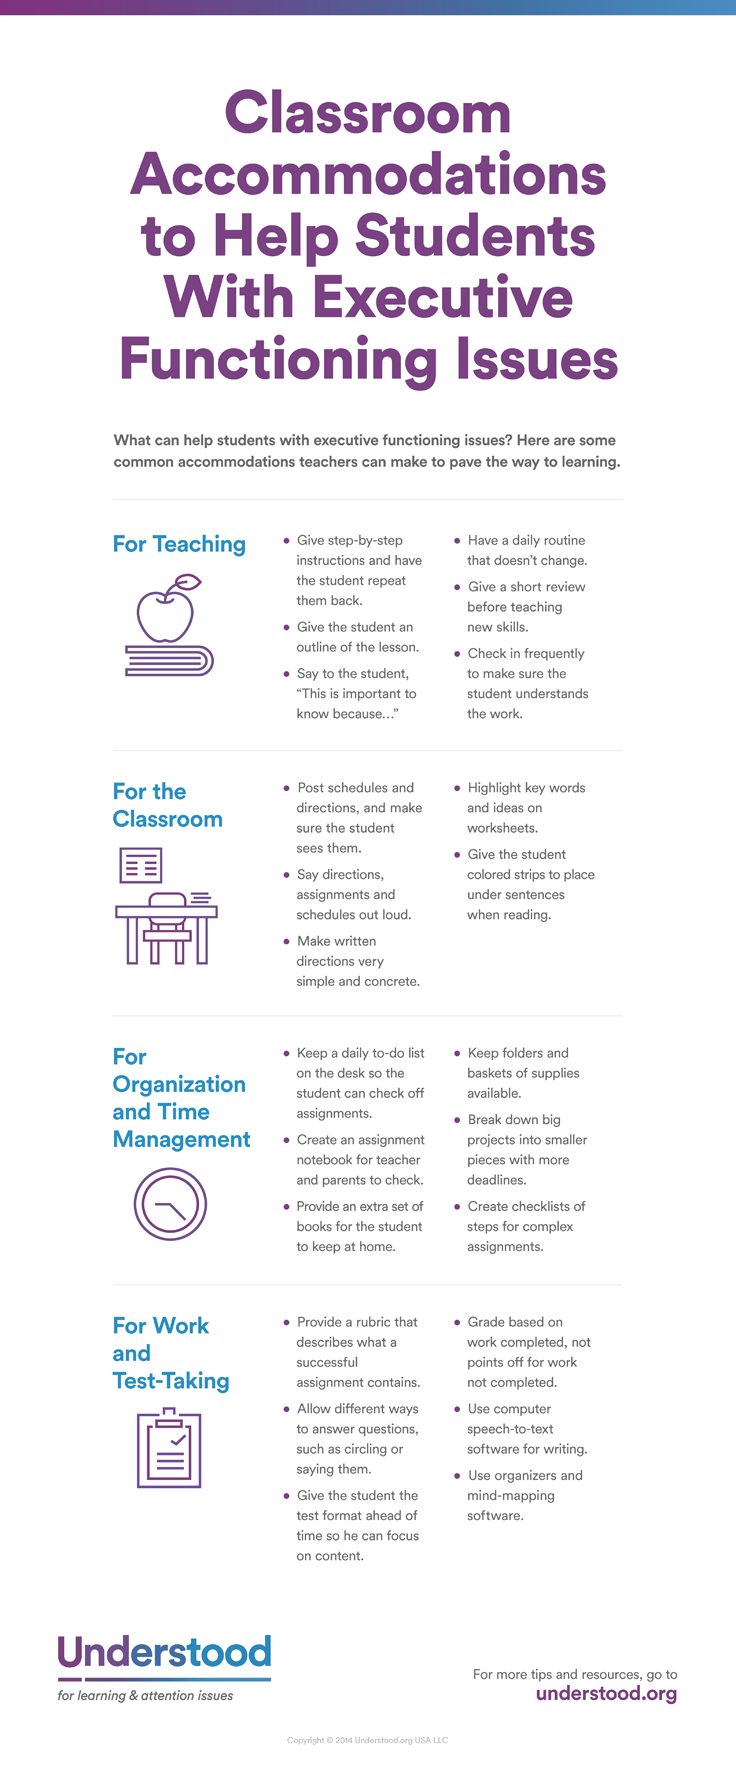 at a glance: classroom accommodations for executive functioning